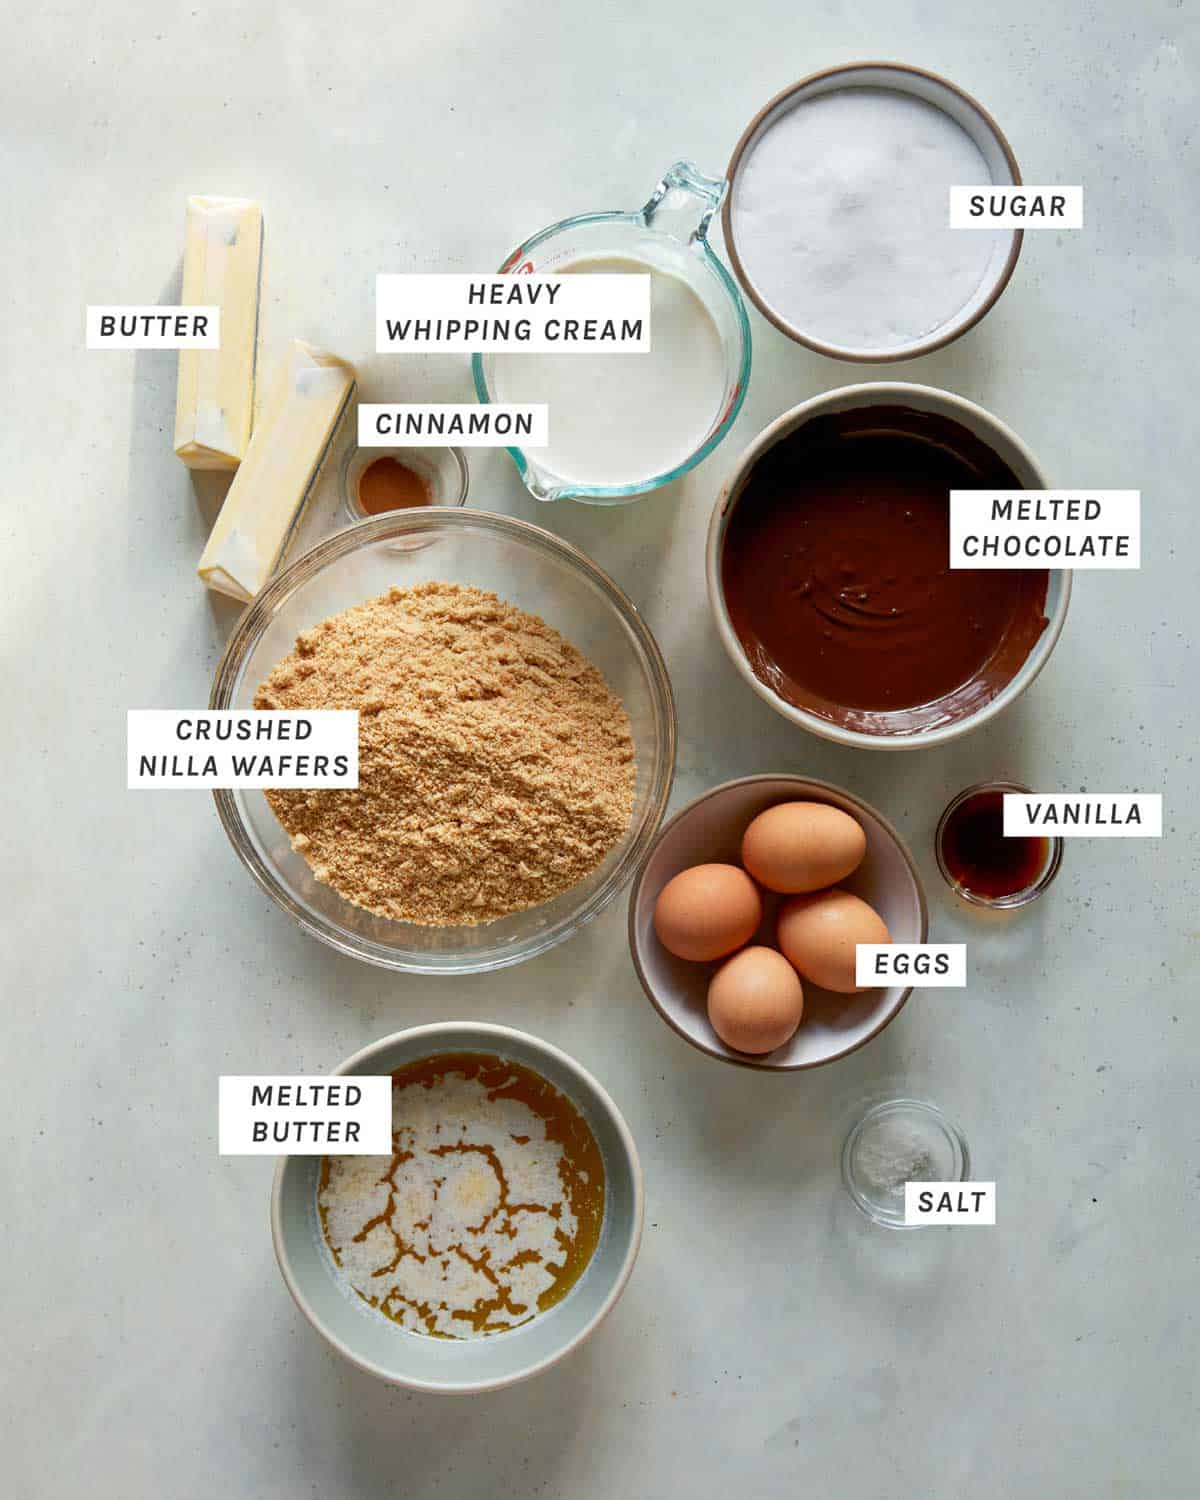 French silk tart ingredients all arranged on a kitchen counter.